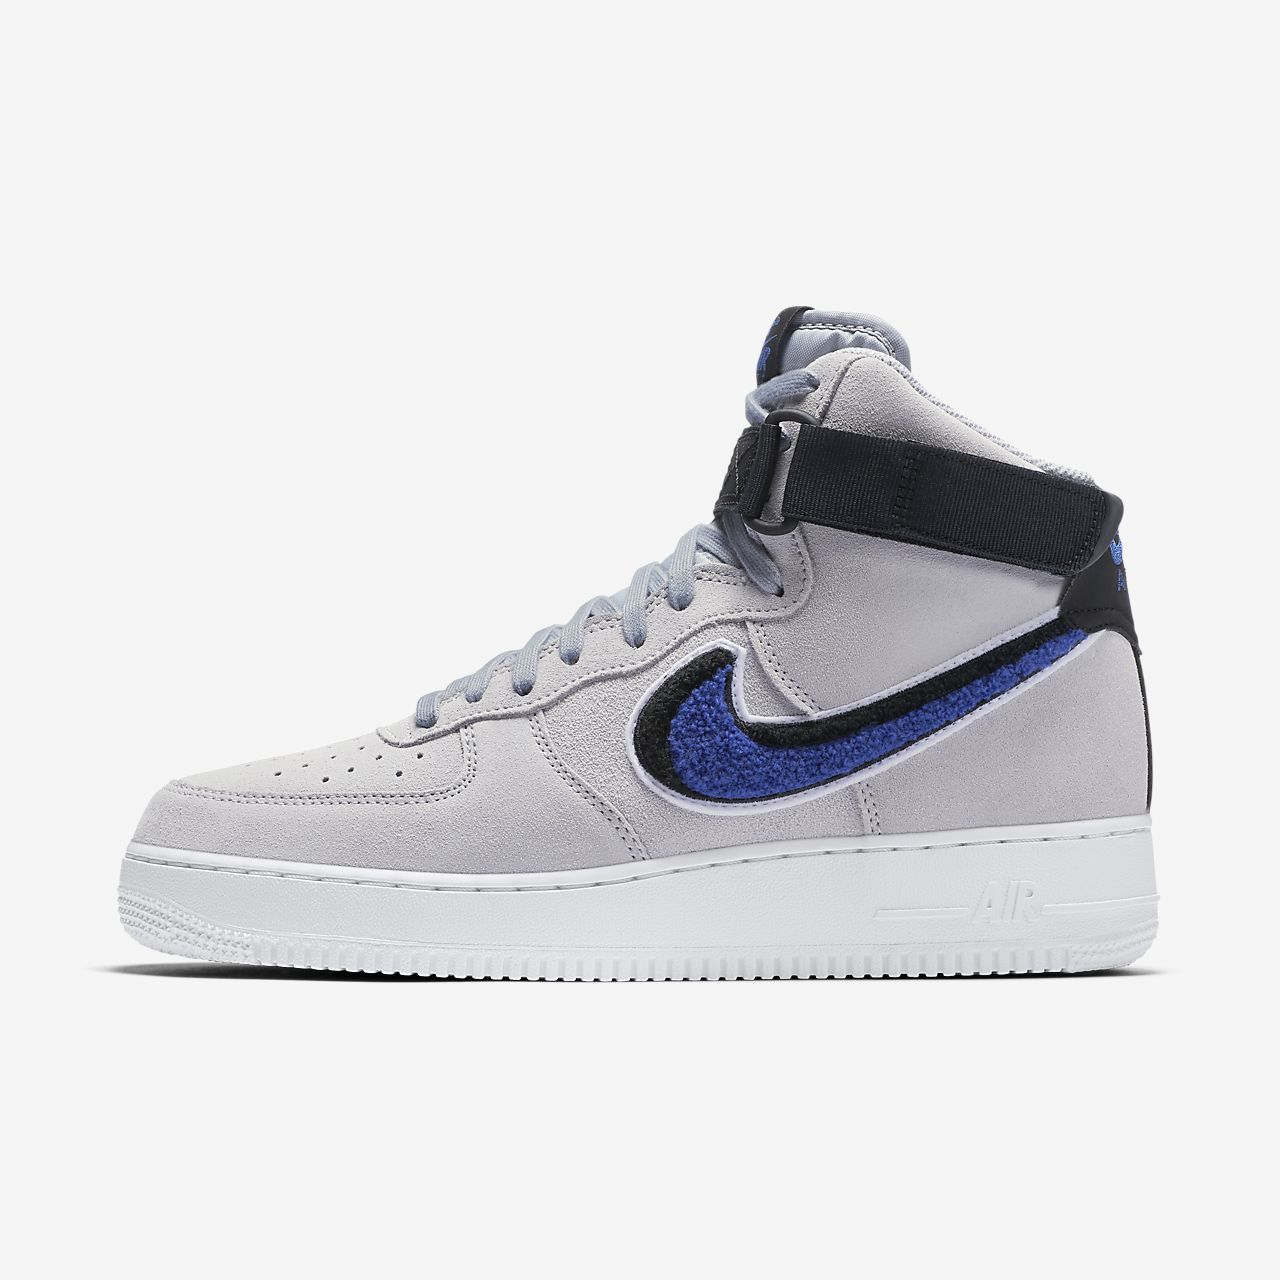 ff3ba9efcc ... purchase nike air force 1 high 07 lv8 mens shoe 8d1a6 0b485